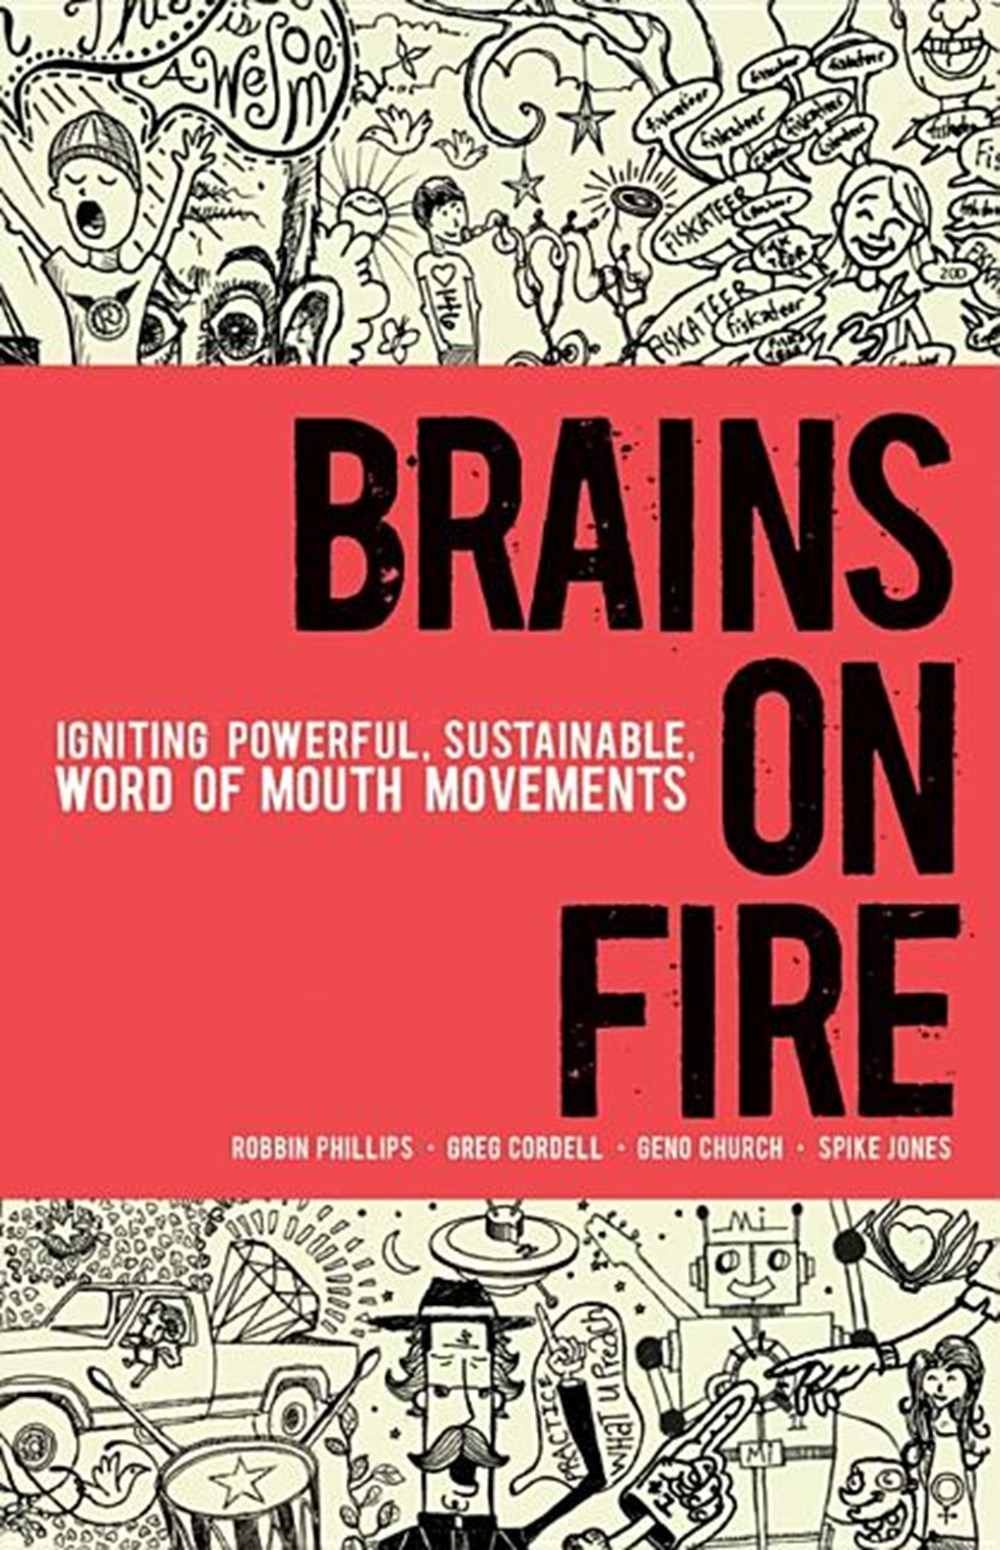 Brains on Fire Igniting Powerful, Sustainable, Word of Mouth Movements